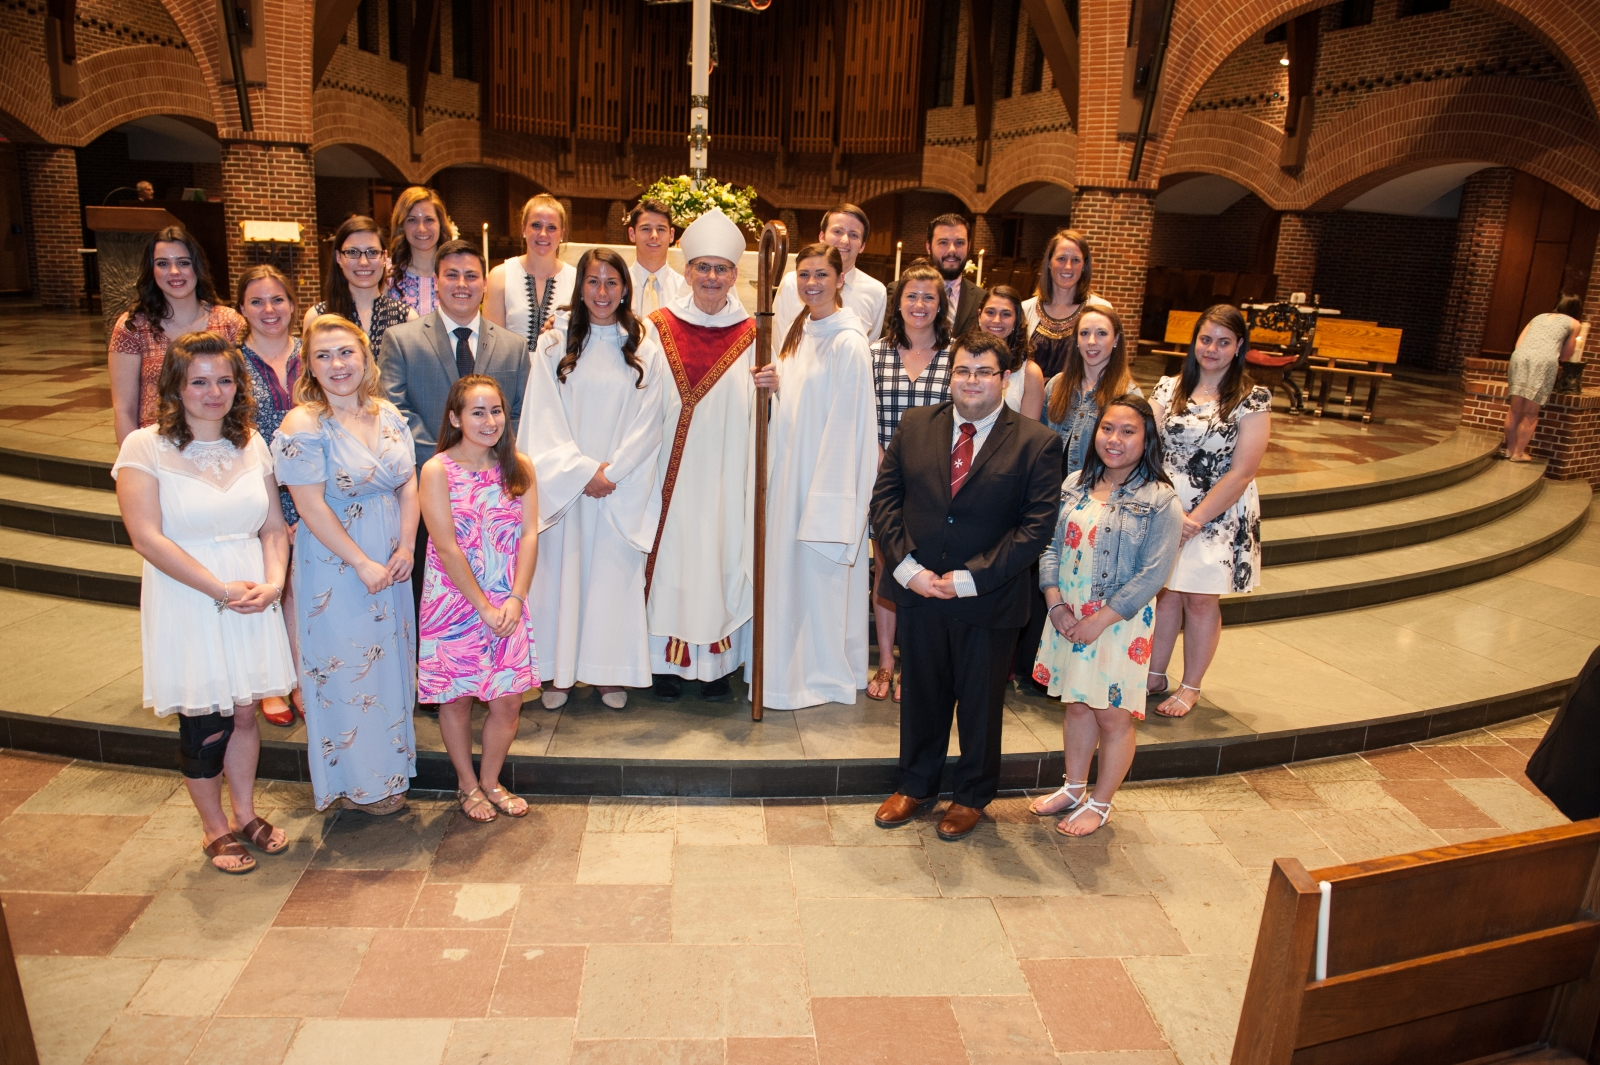 21 Students receive the Sacraments of Initiation